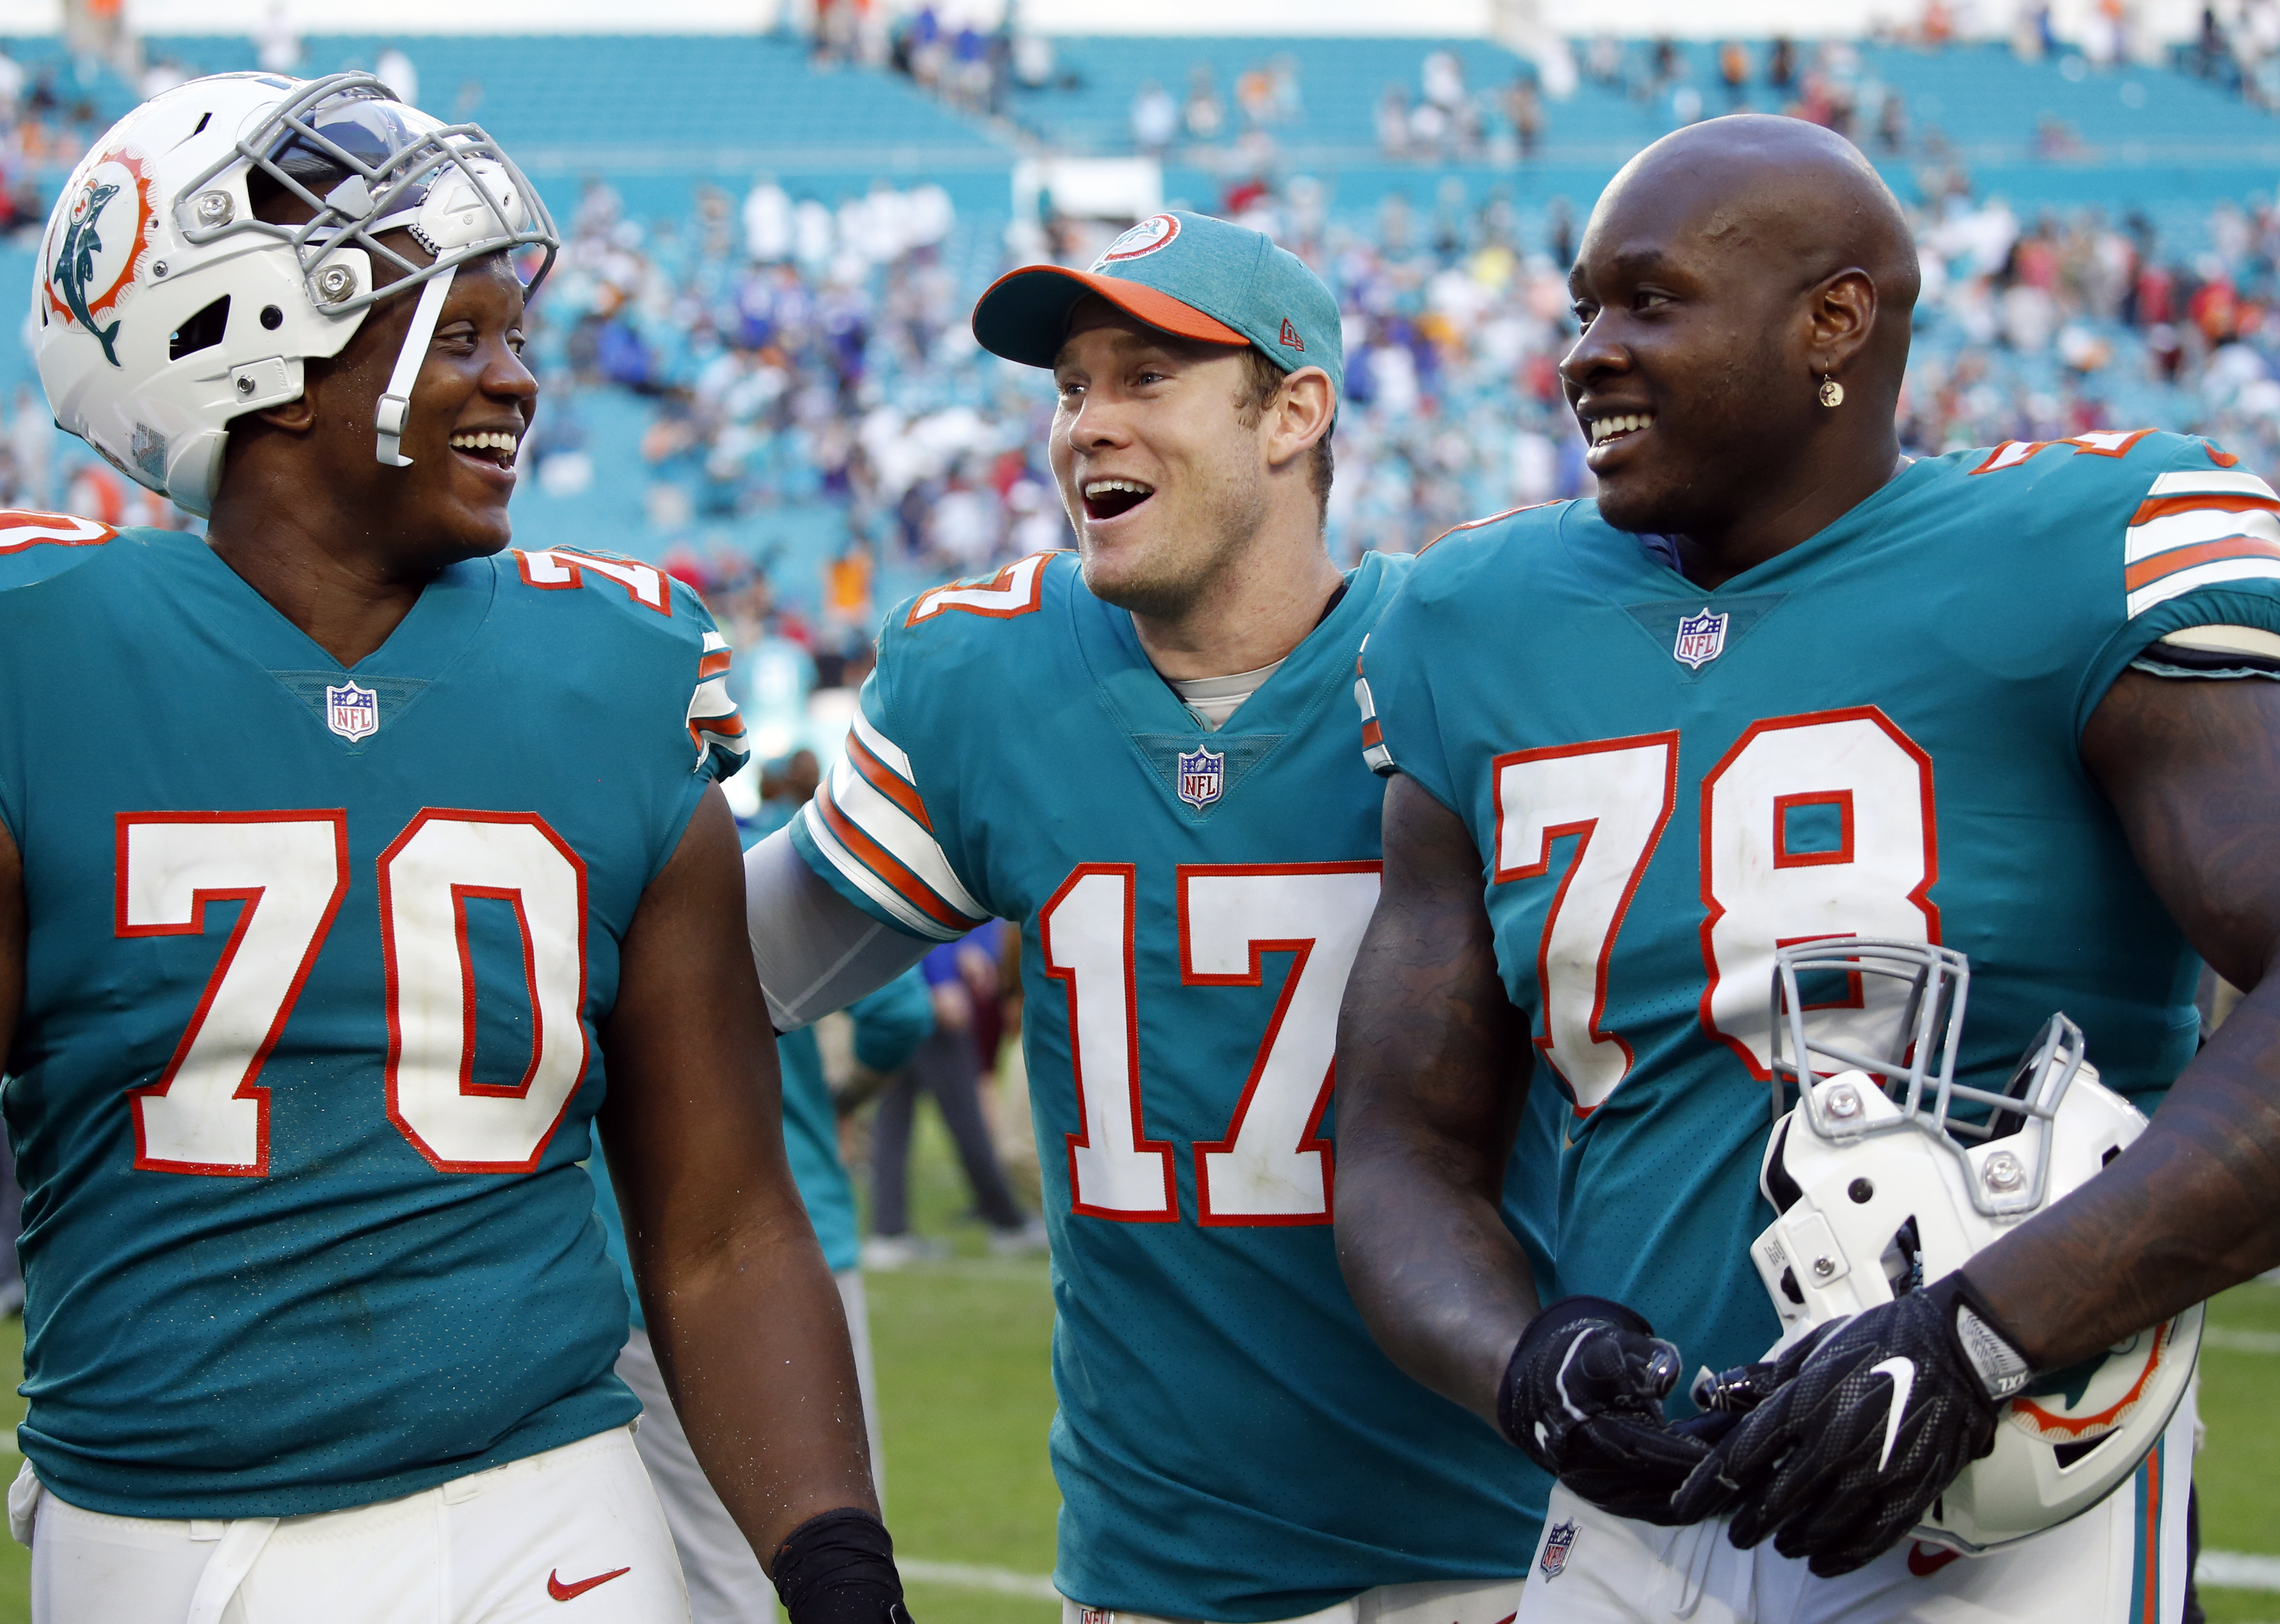 Phillips penalty hurts as Bills lose to Dolphins 21-17